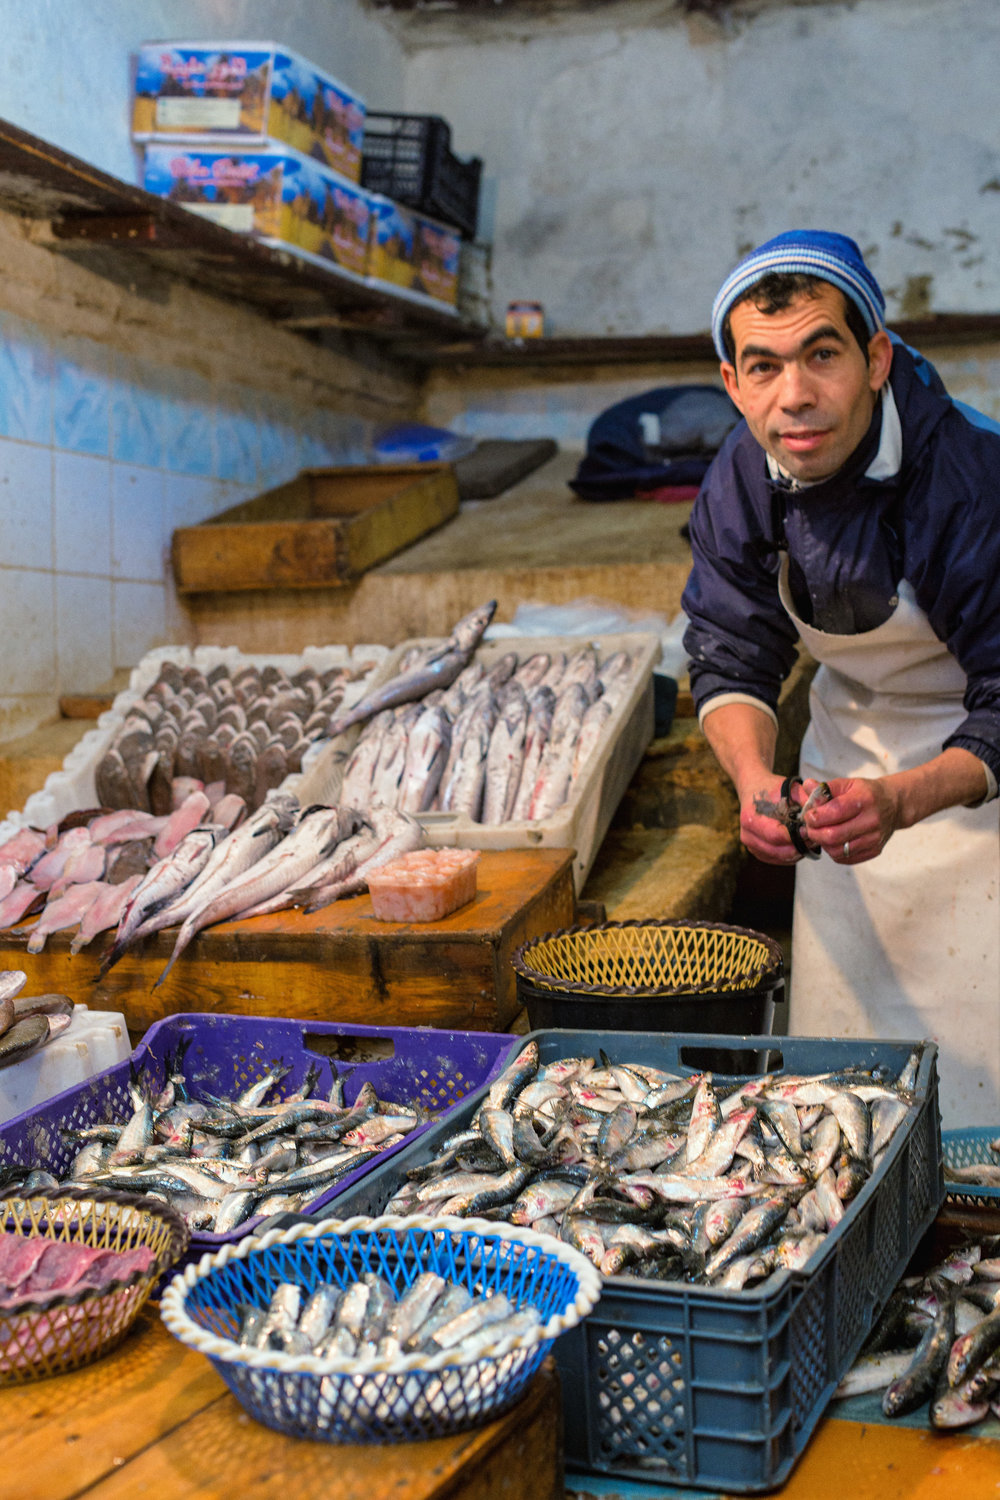 A fisherman in the Fes souk looks up from cleaning the day's catch.